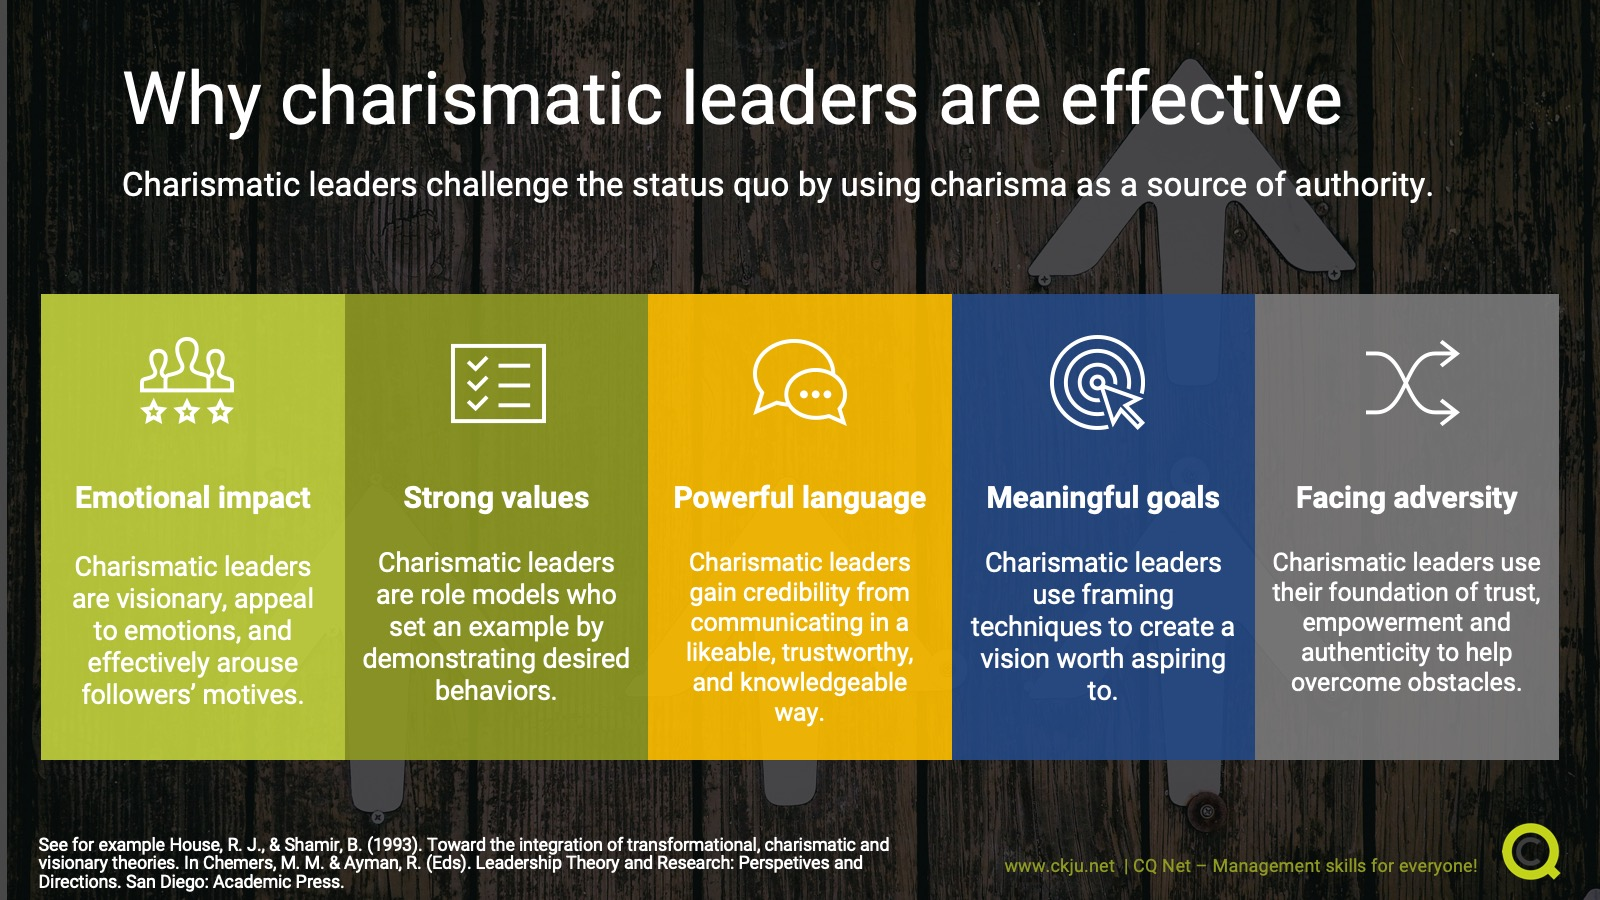 Charismatic leaders use charisma as a source of authority